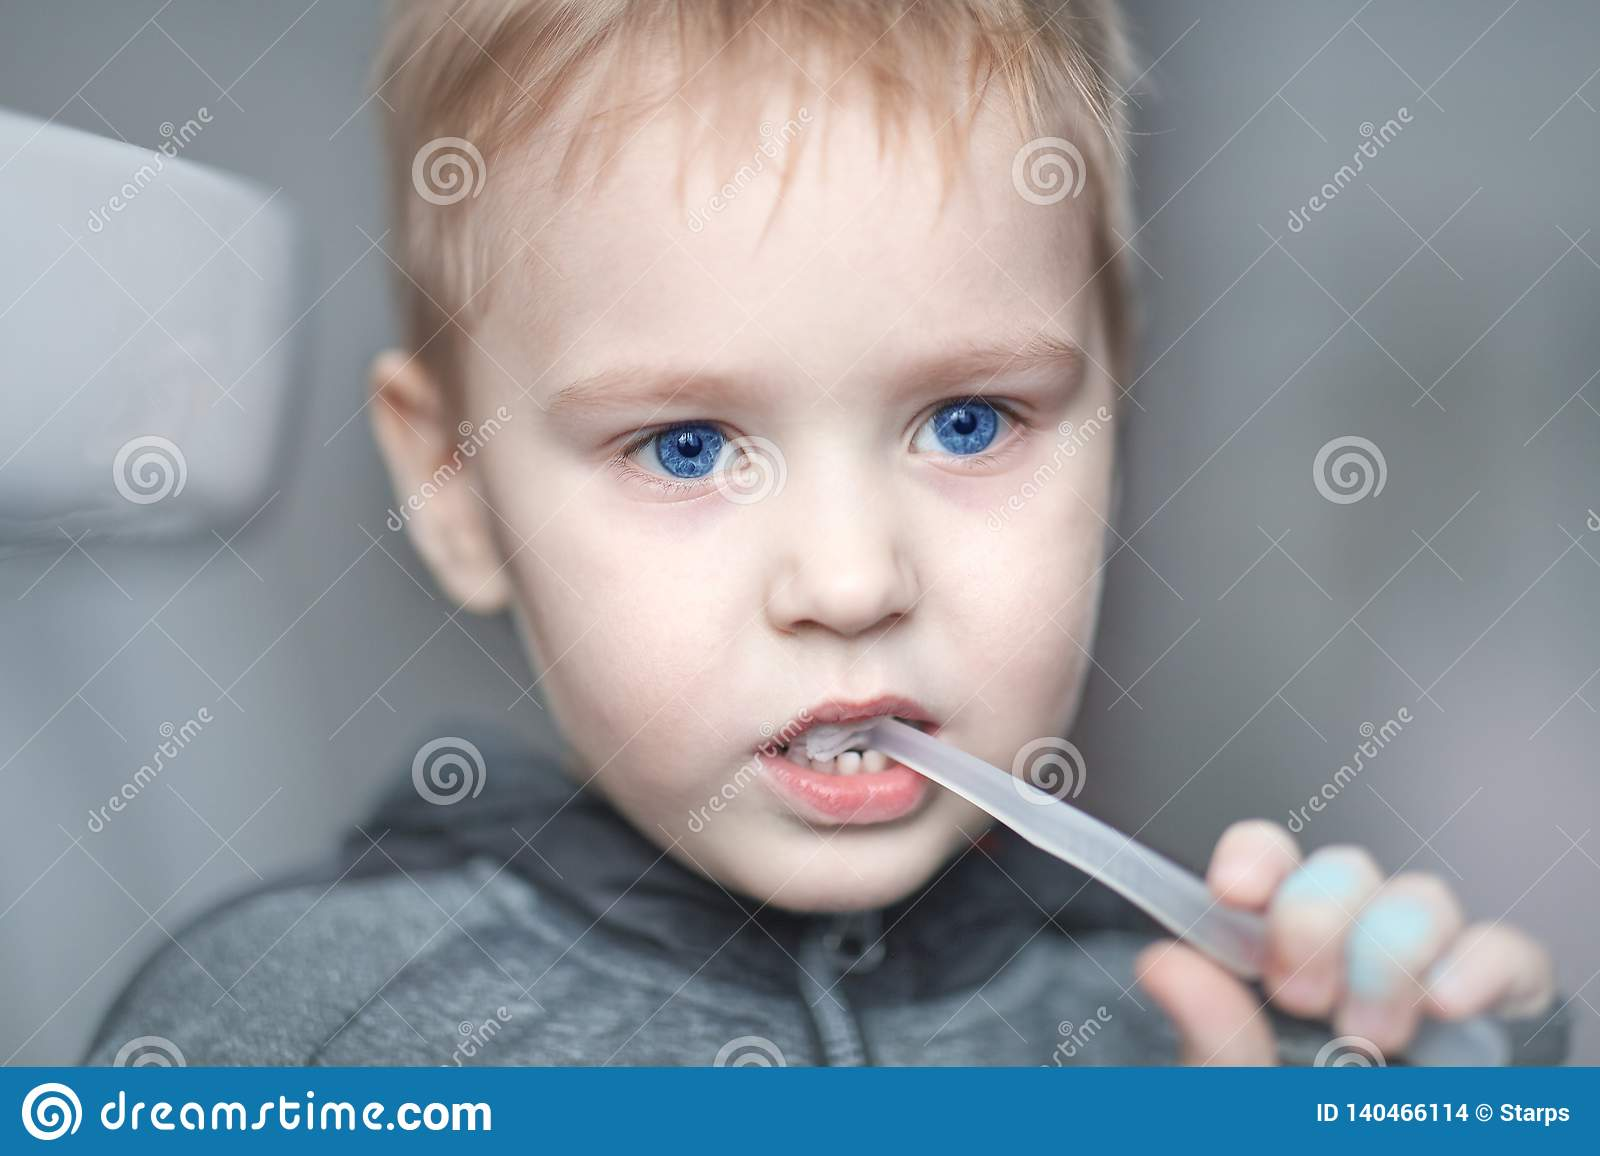 Close up portrait of cute caucasian baby boy with very serious face expression cleaning the teeth with teeth brush, by himself. Br